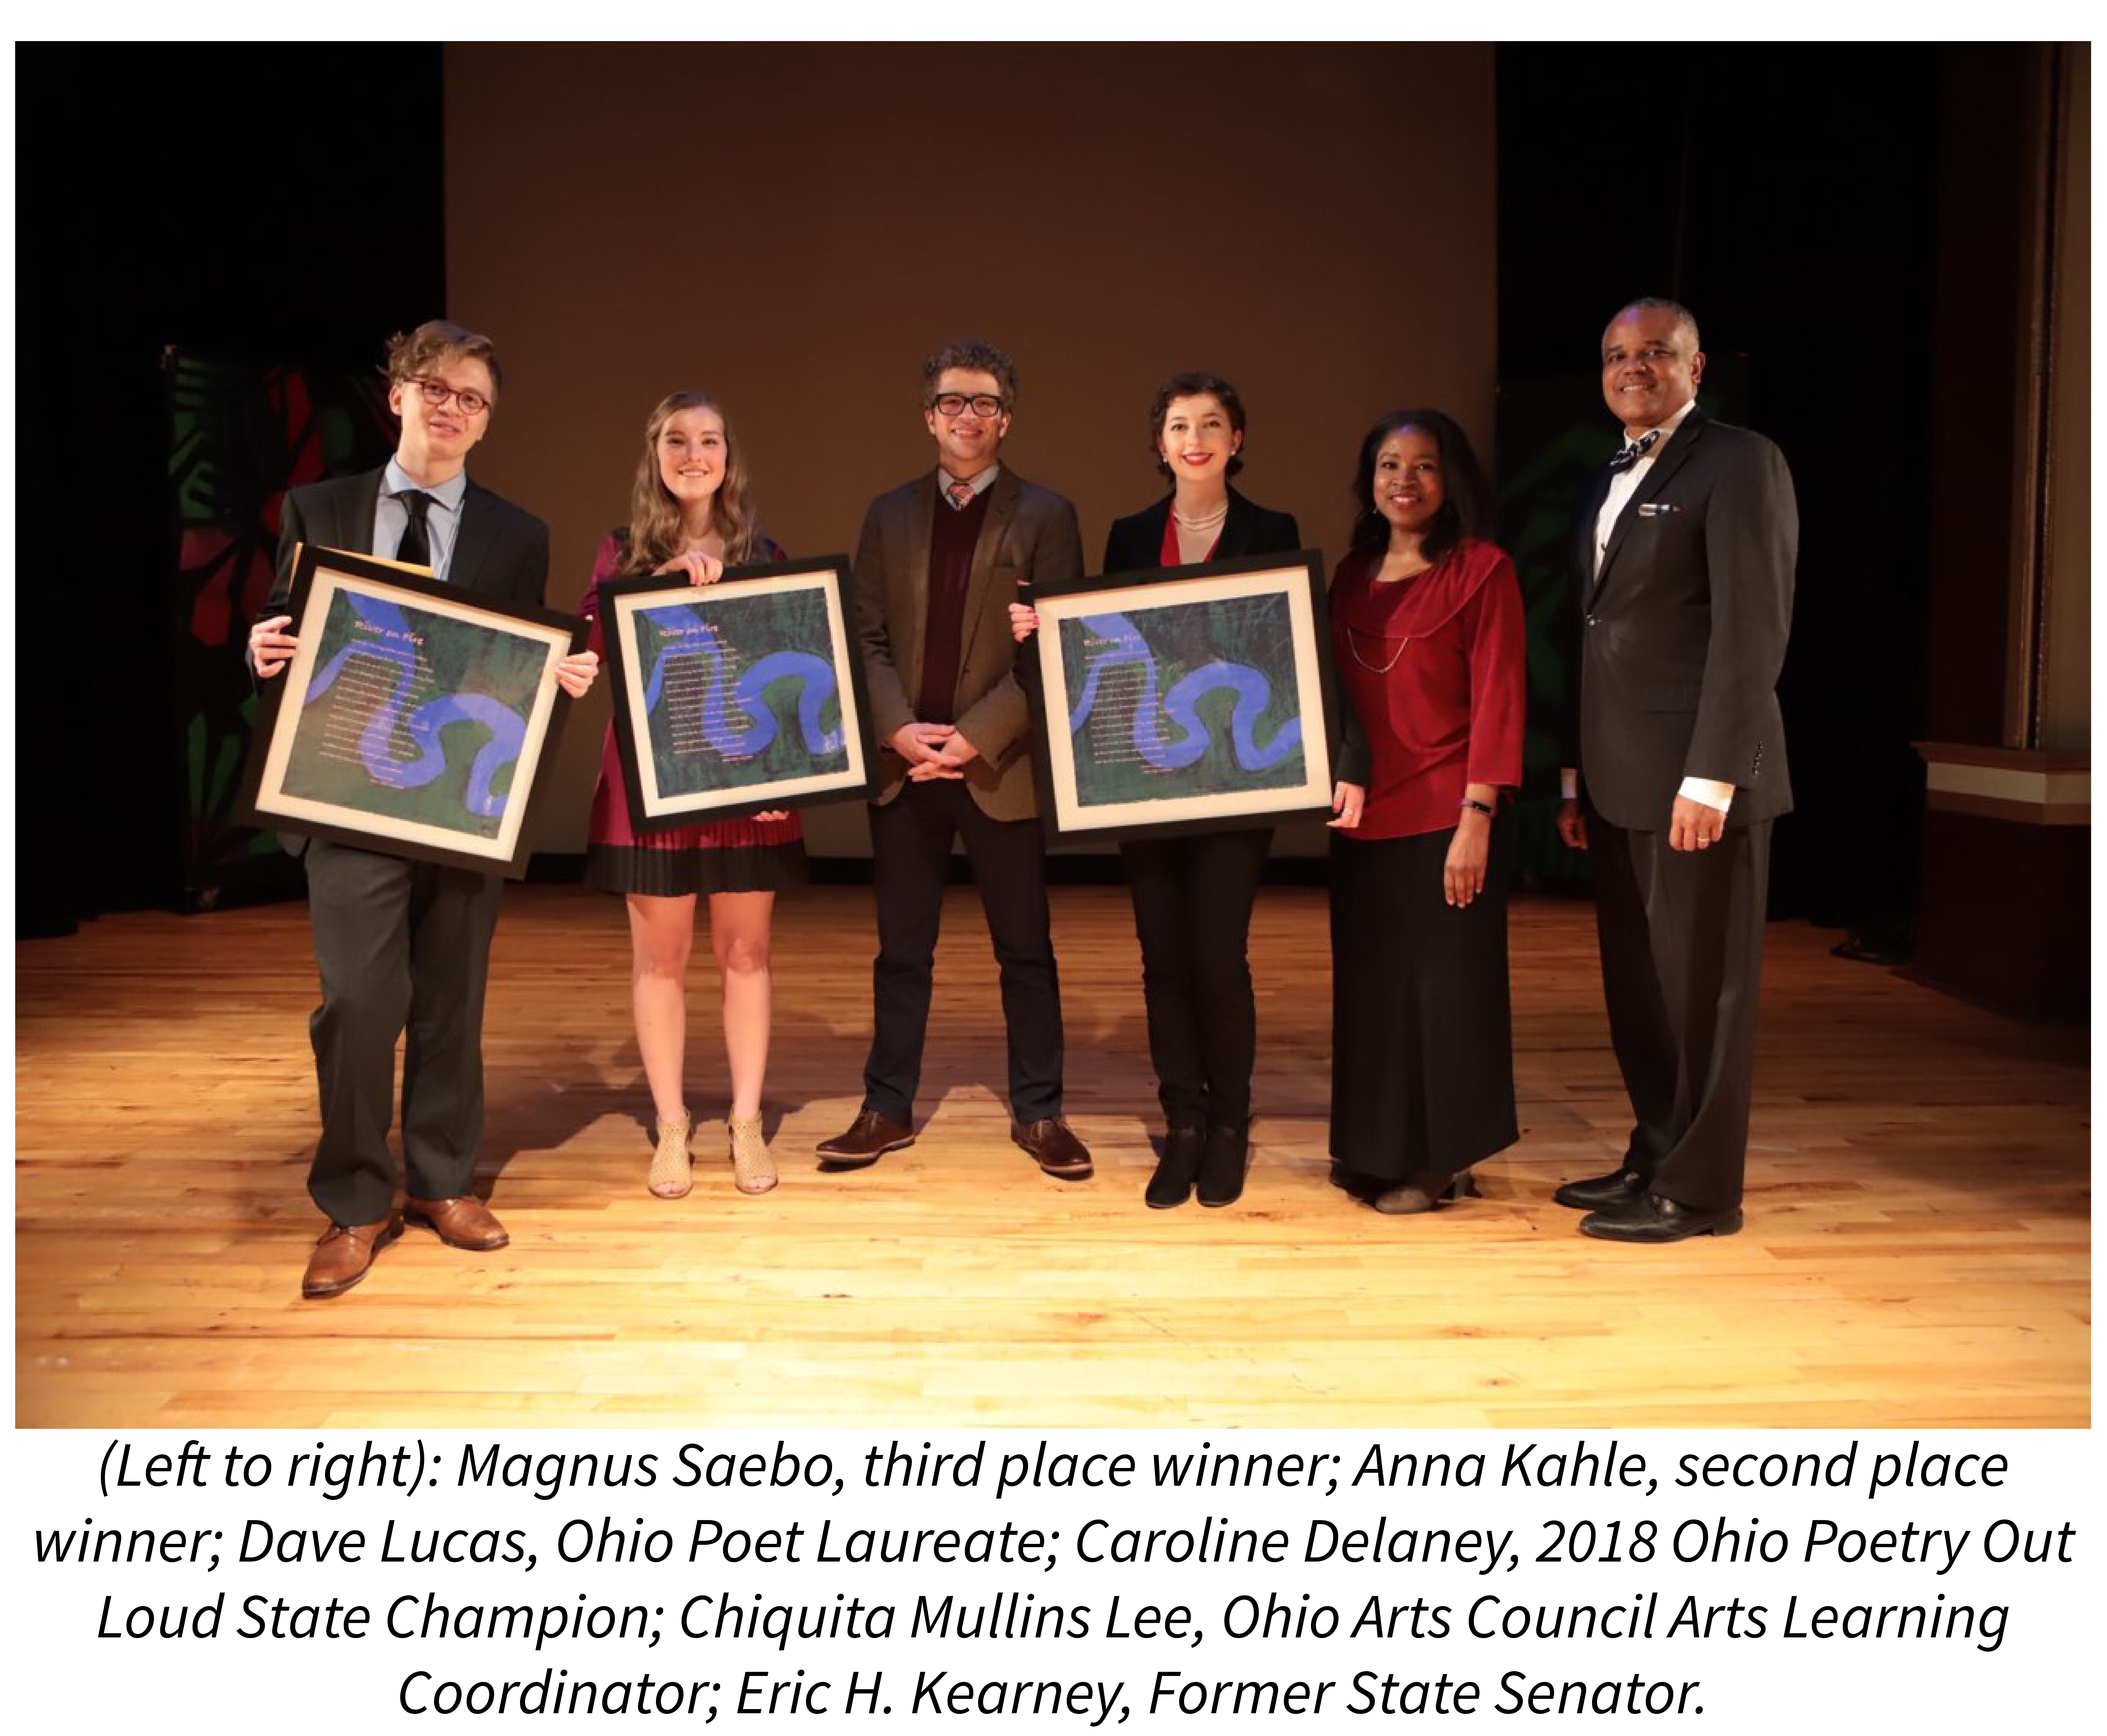 Magnus Saebo, 2018 Ohio Poetry Out Loud third place winner; Anna Kahle, 2018 second place winner; Ohio Poet Laureate Dave Lucas; 2018 Ohio Poetry Out Loud State Champion Caroline Delaney; Ohio Arts Council Arts Learning Coordinator Chiquita Mullins Lee; and Former State Senator Eric H. Kearney at the 2018 Ohio Poetry Out Loud State Finals competition.